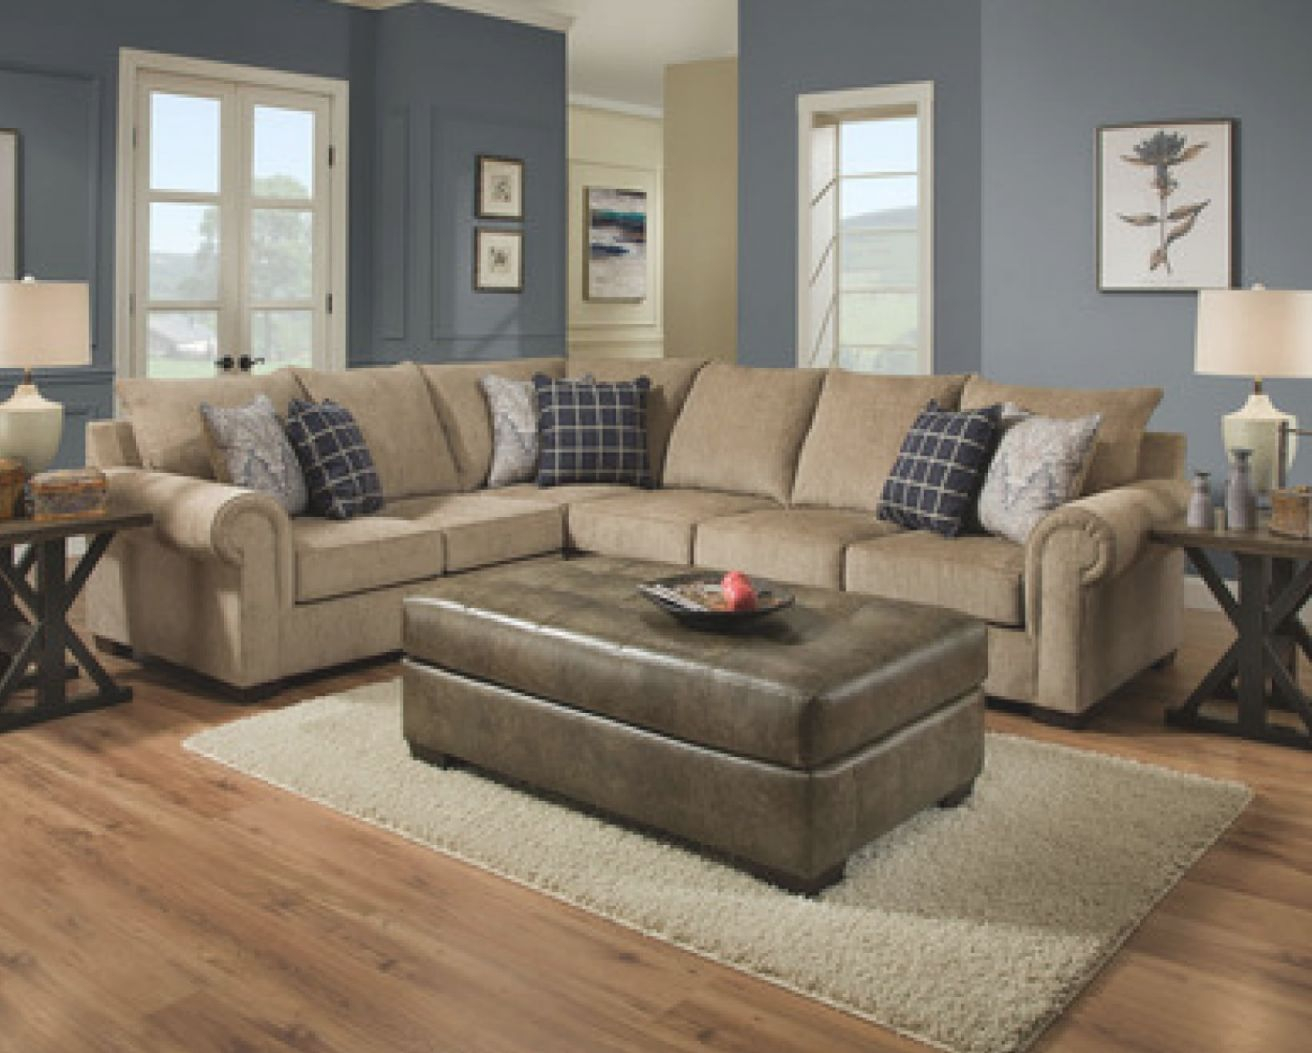 Simmons | Davis Home Furniture - Asheville, Canton throughout Simmons Living Room Furniture